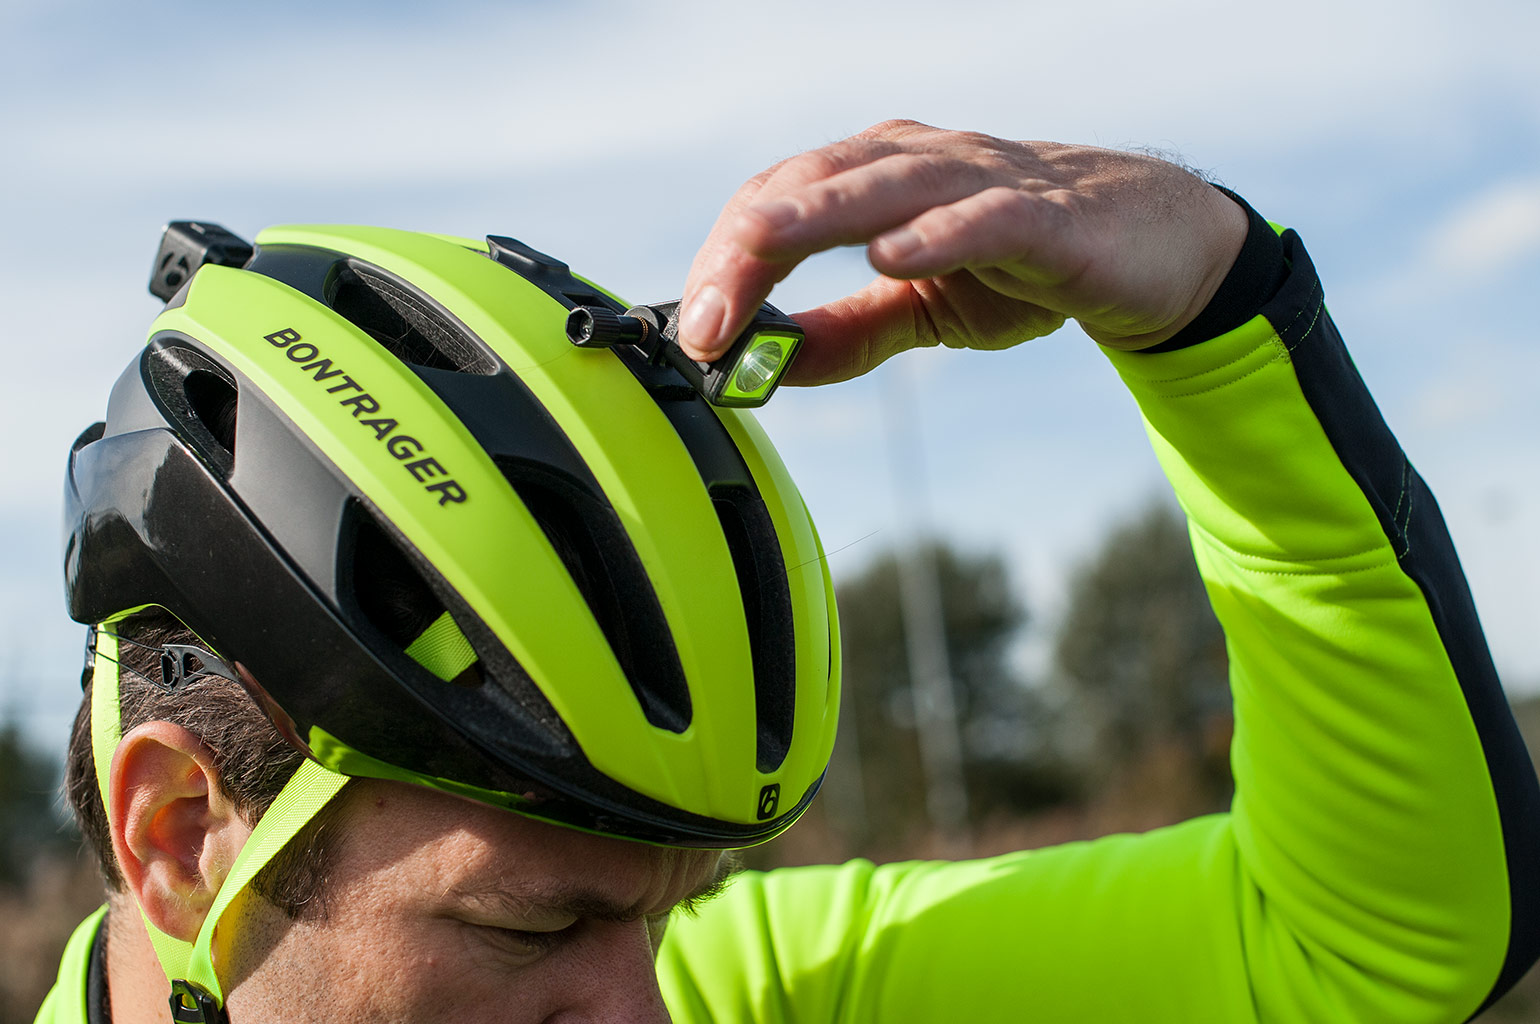 Verlichting Racefiets Test Review Bontrager Circuit Mips Helm I C M Ion En Flare